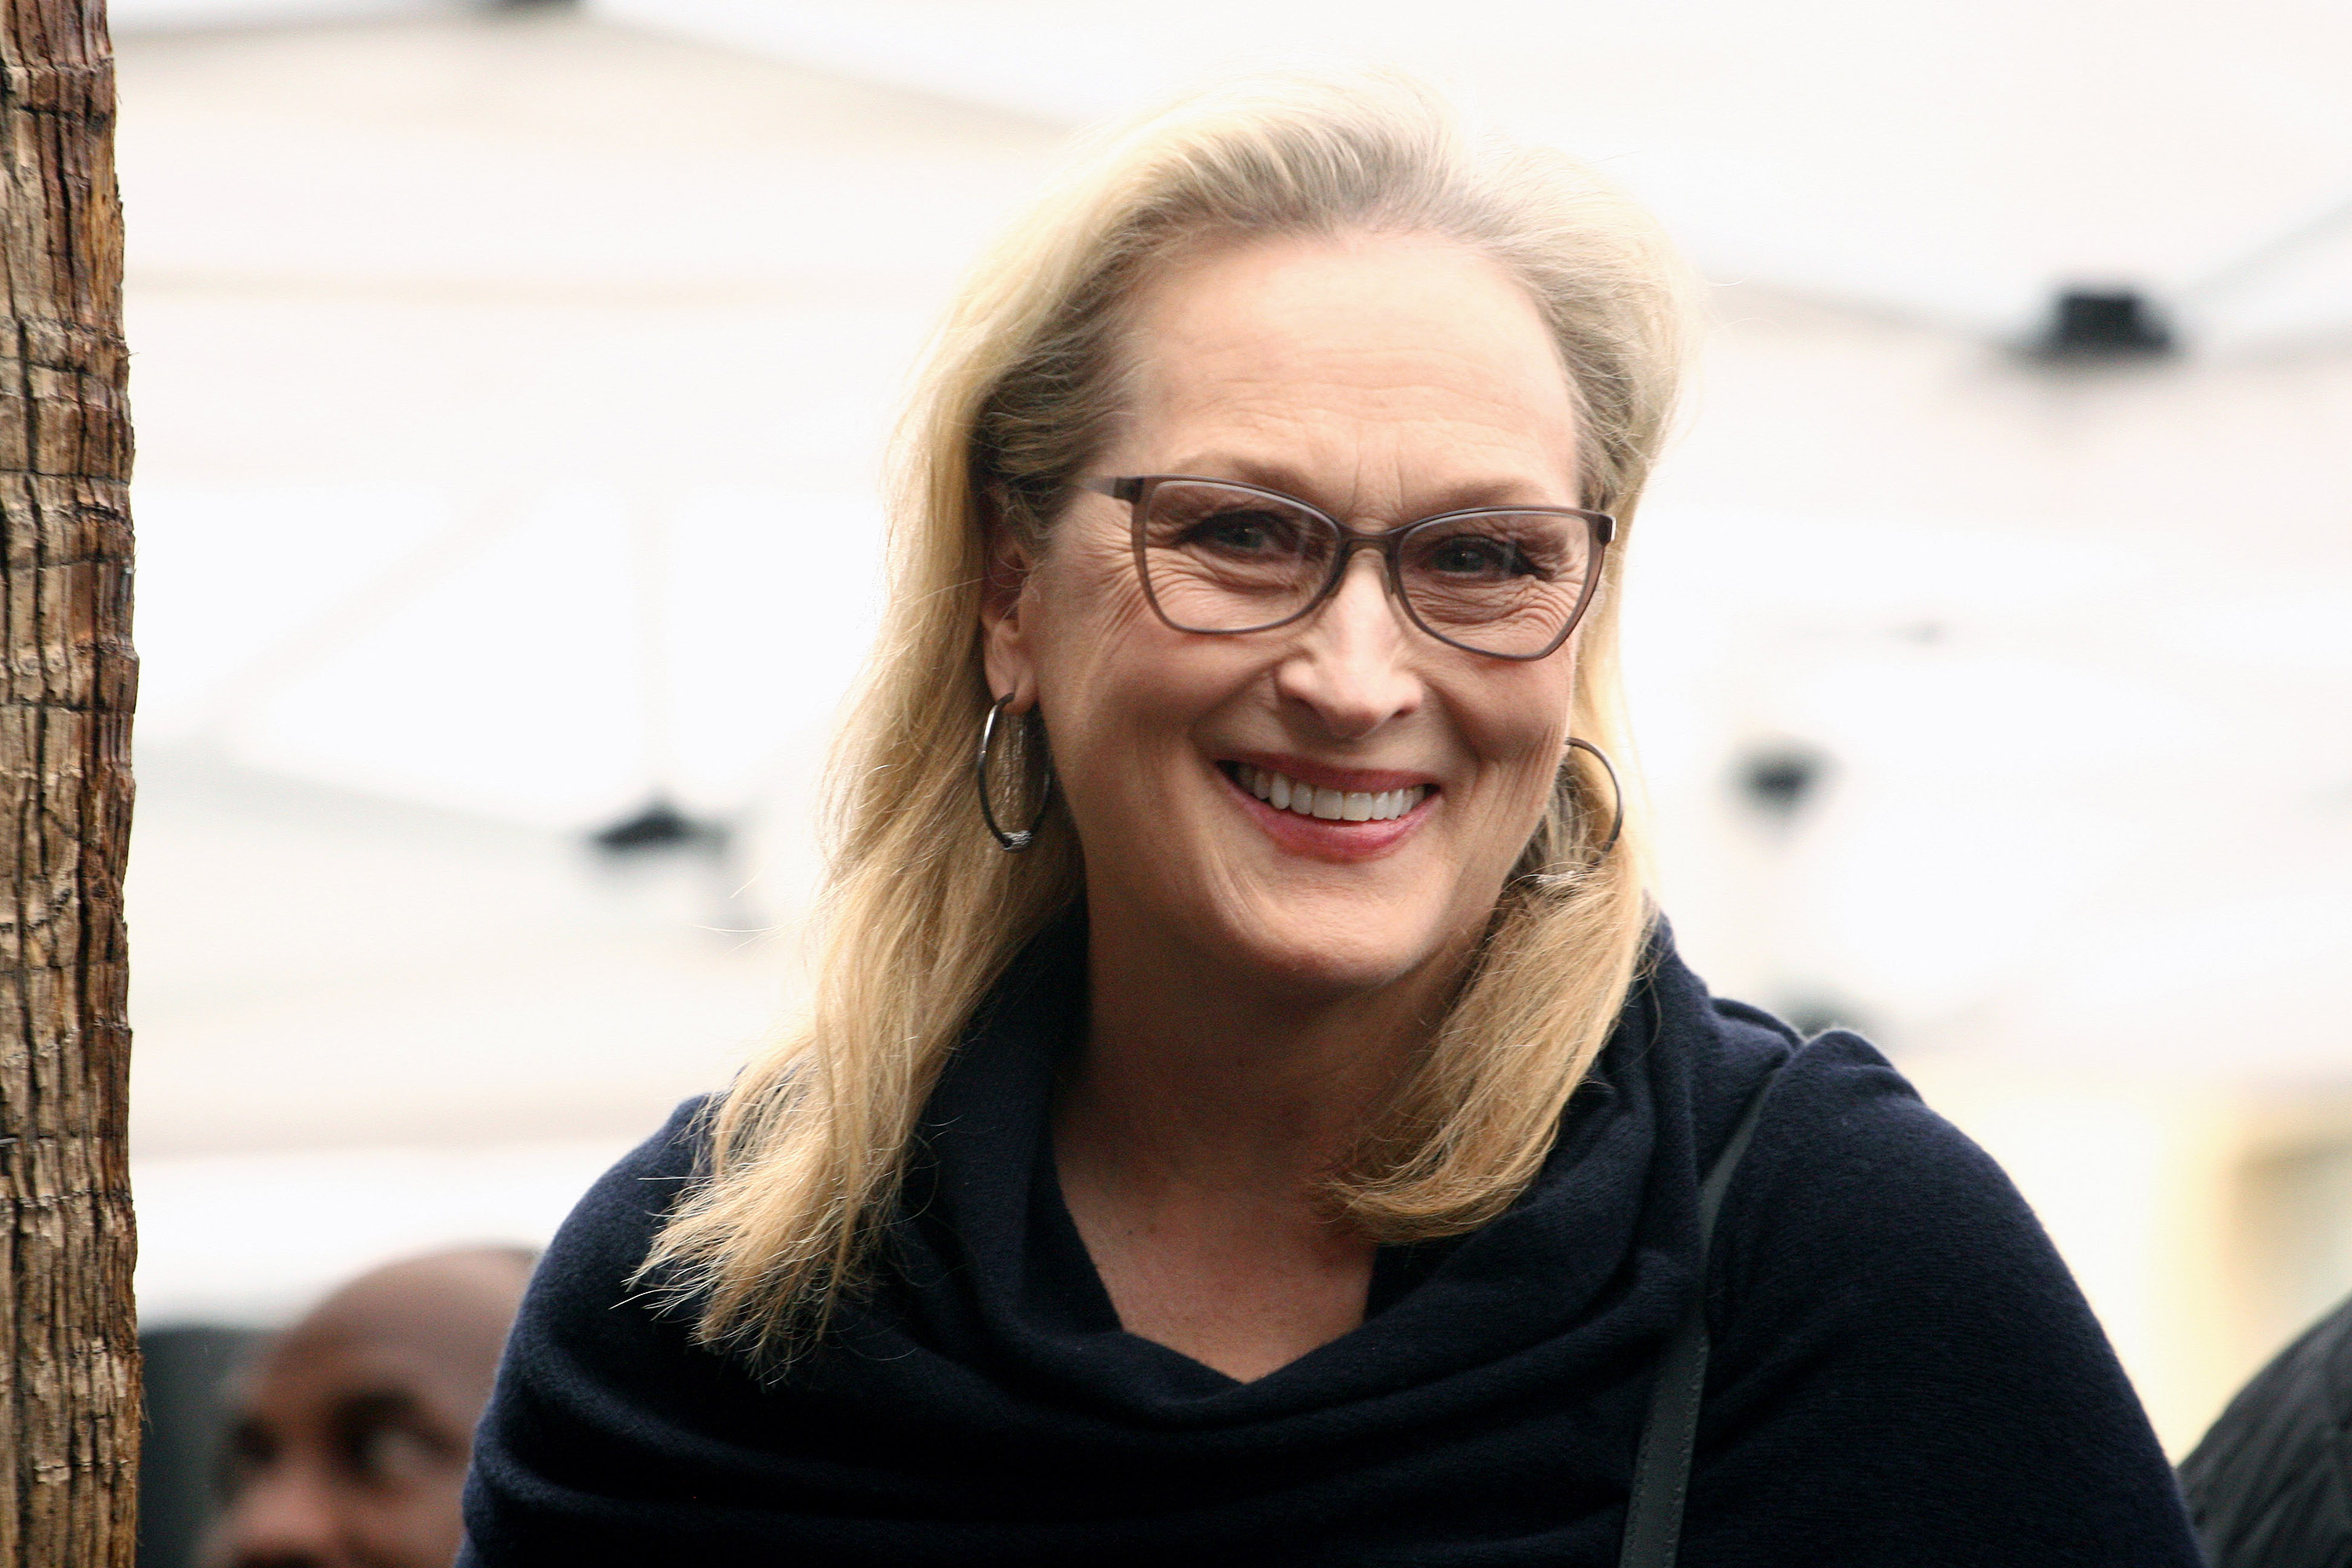 Meryl Streep tore Donald Trump down at the Golden Globes